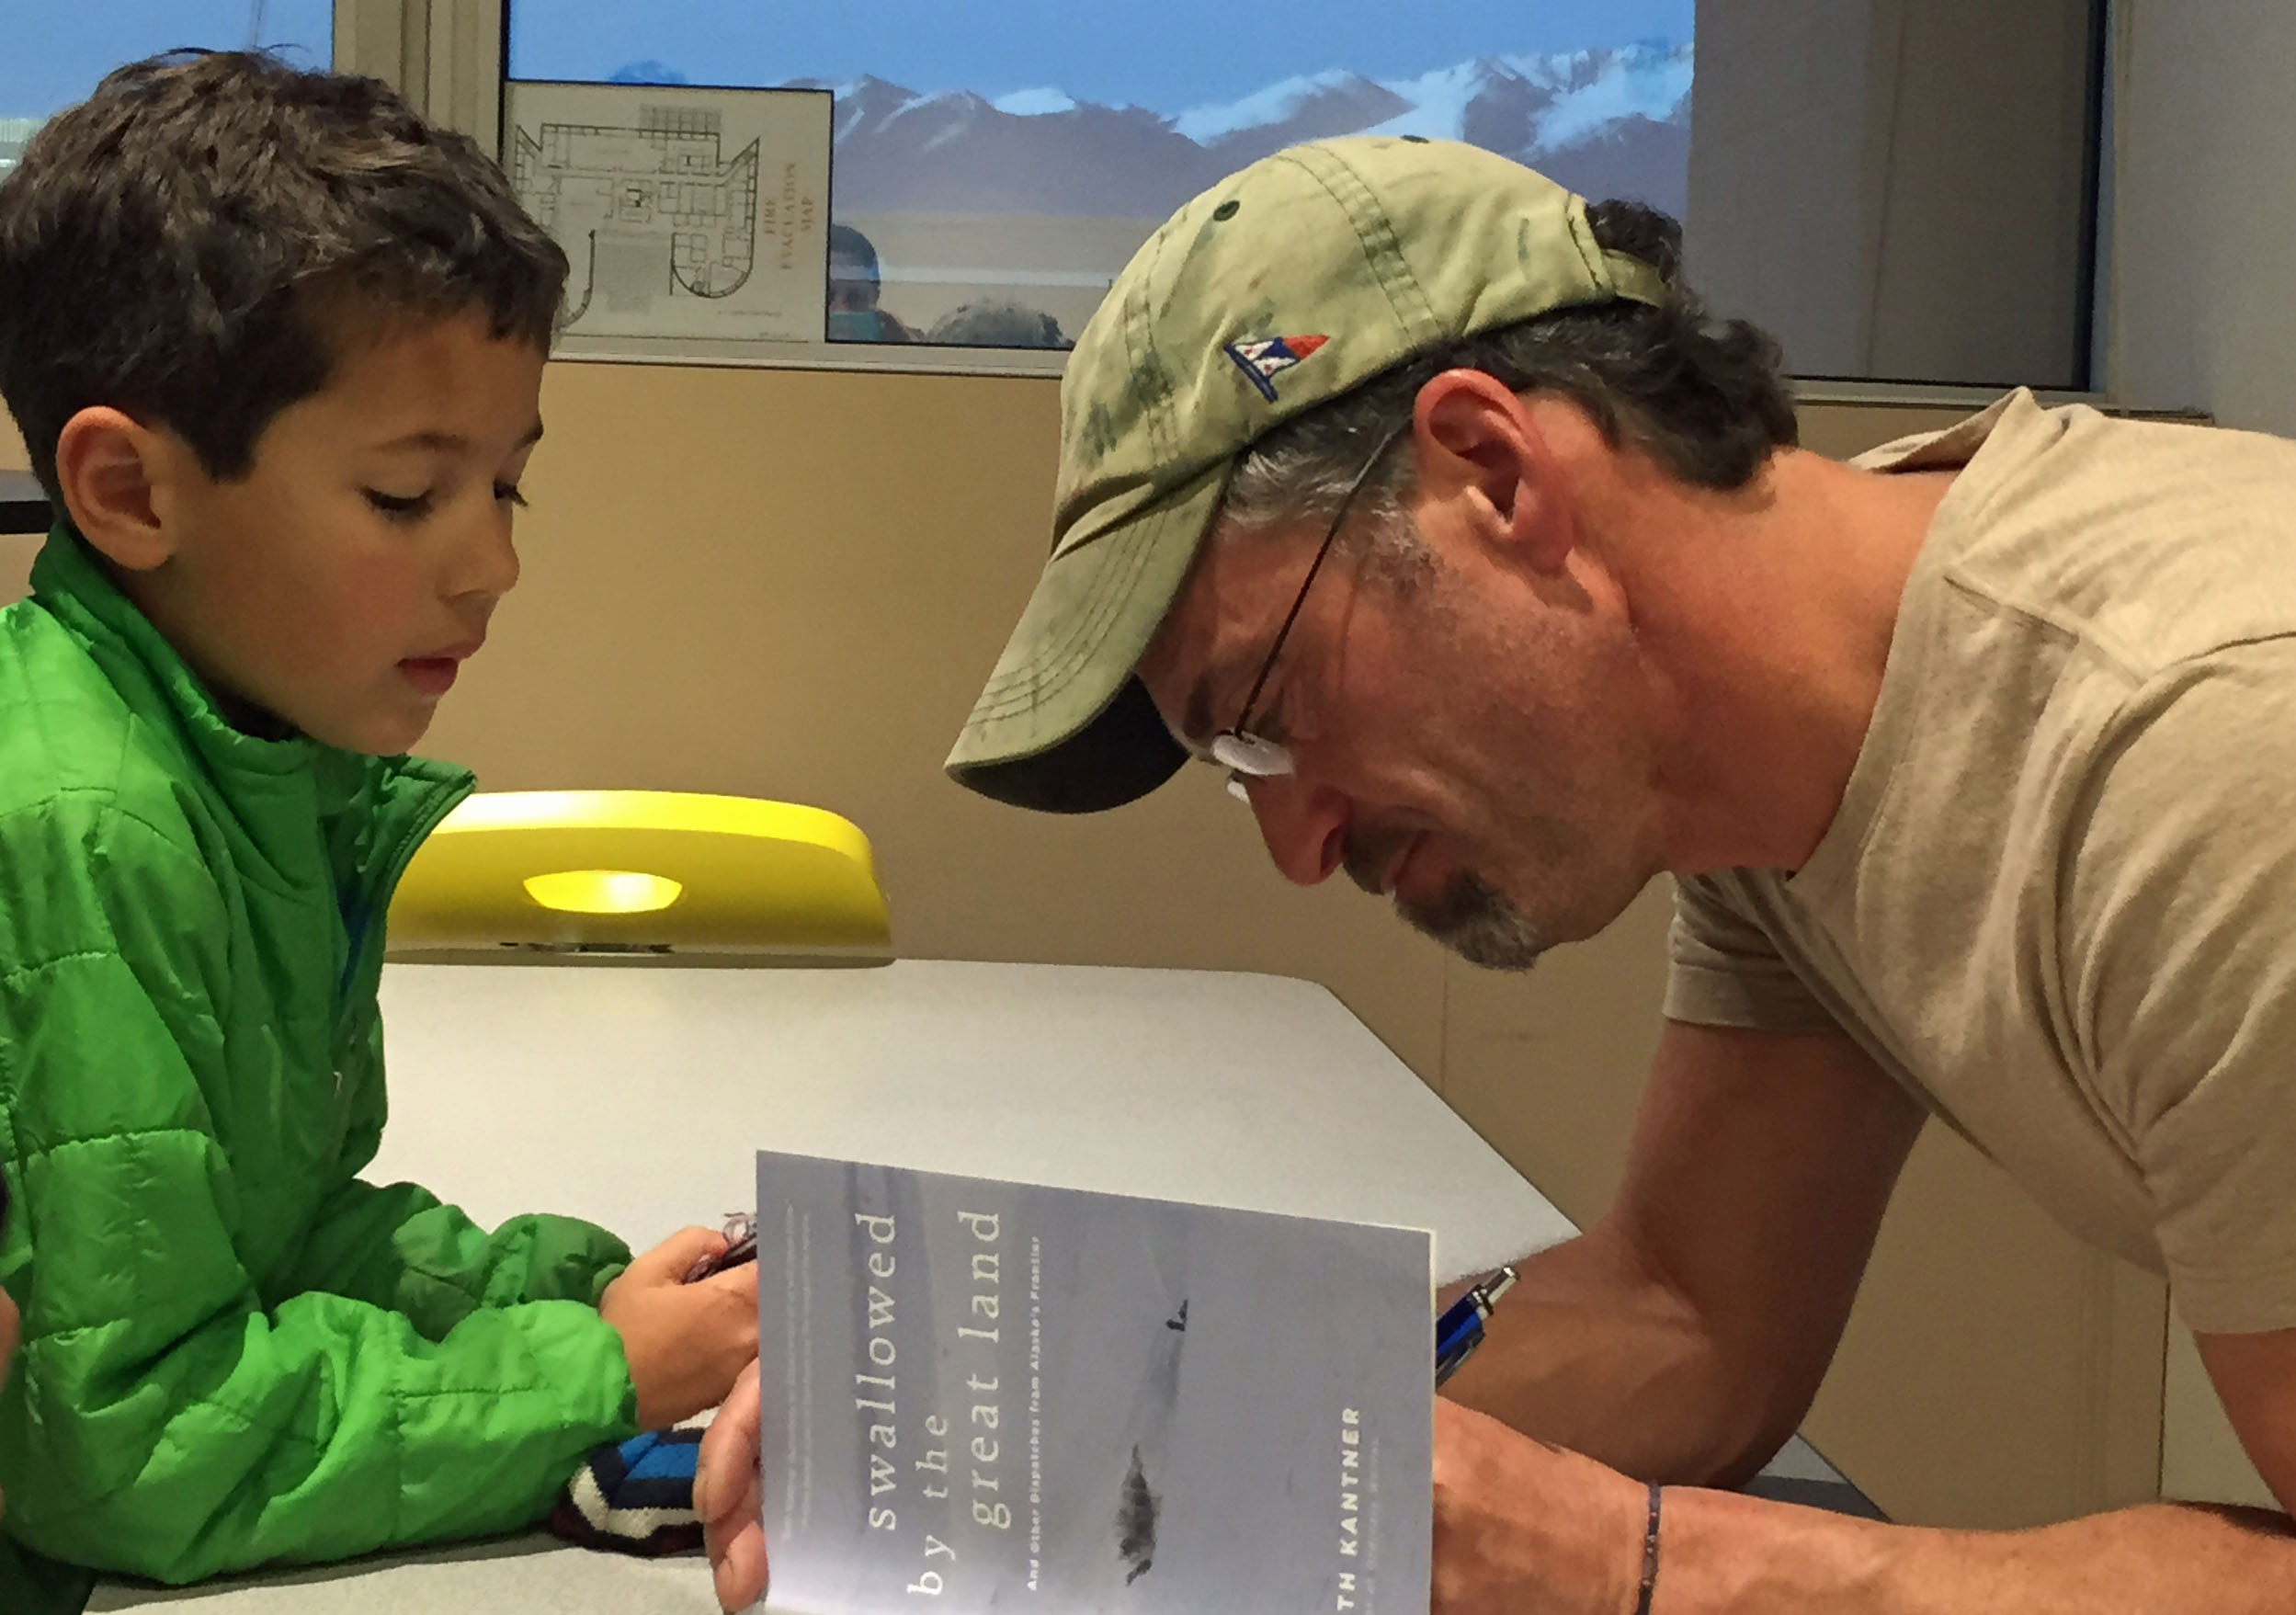 Seth Kantner signs a copy of his new book for a young fan. (Photo by Lori Townsend/APRN)